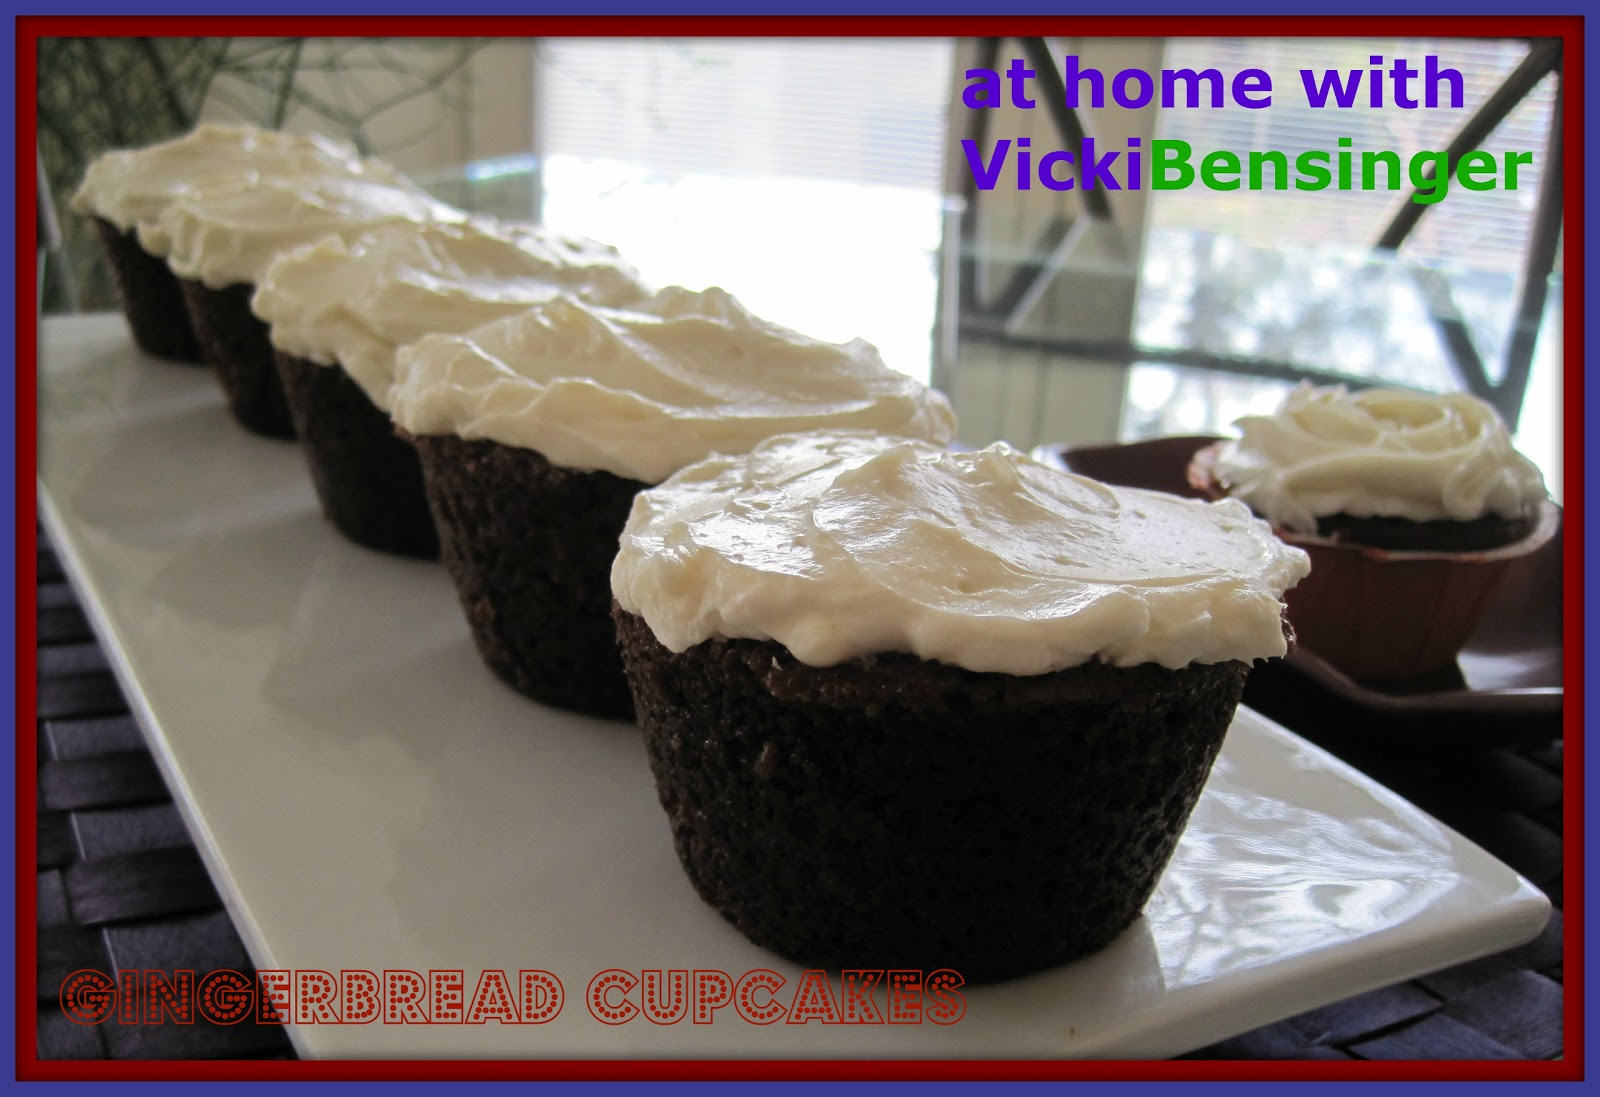 ... Gingerbread Cupcakes with Pumpkin Pudding and Cream Cheese Frosting